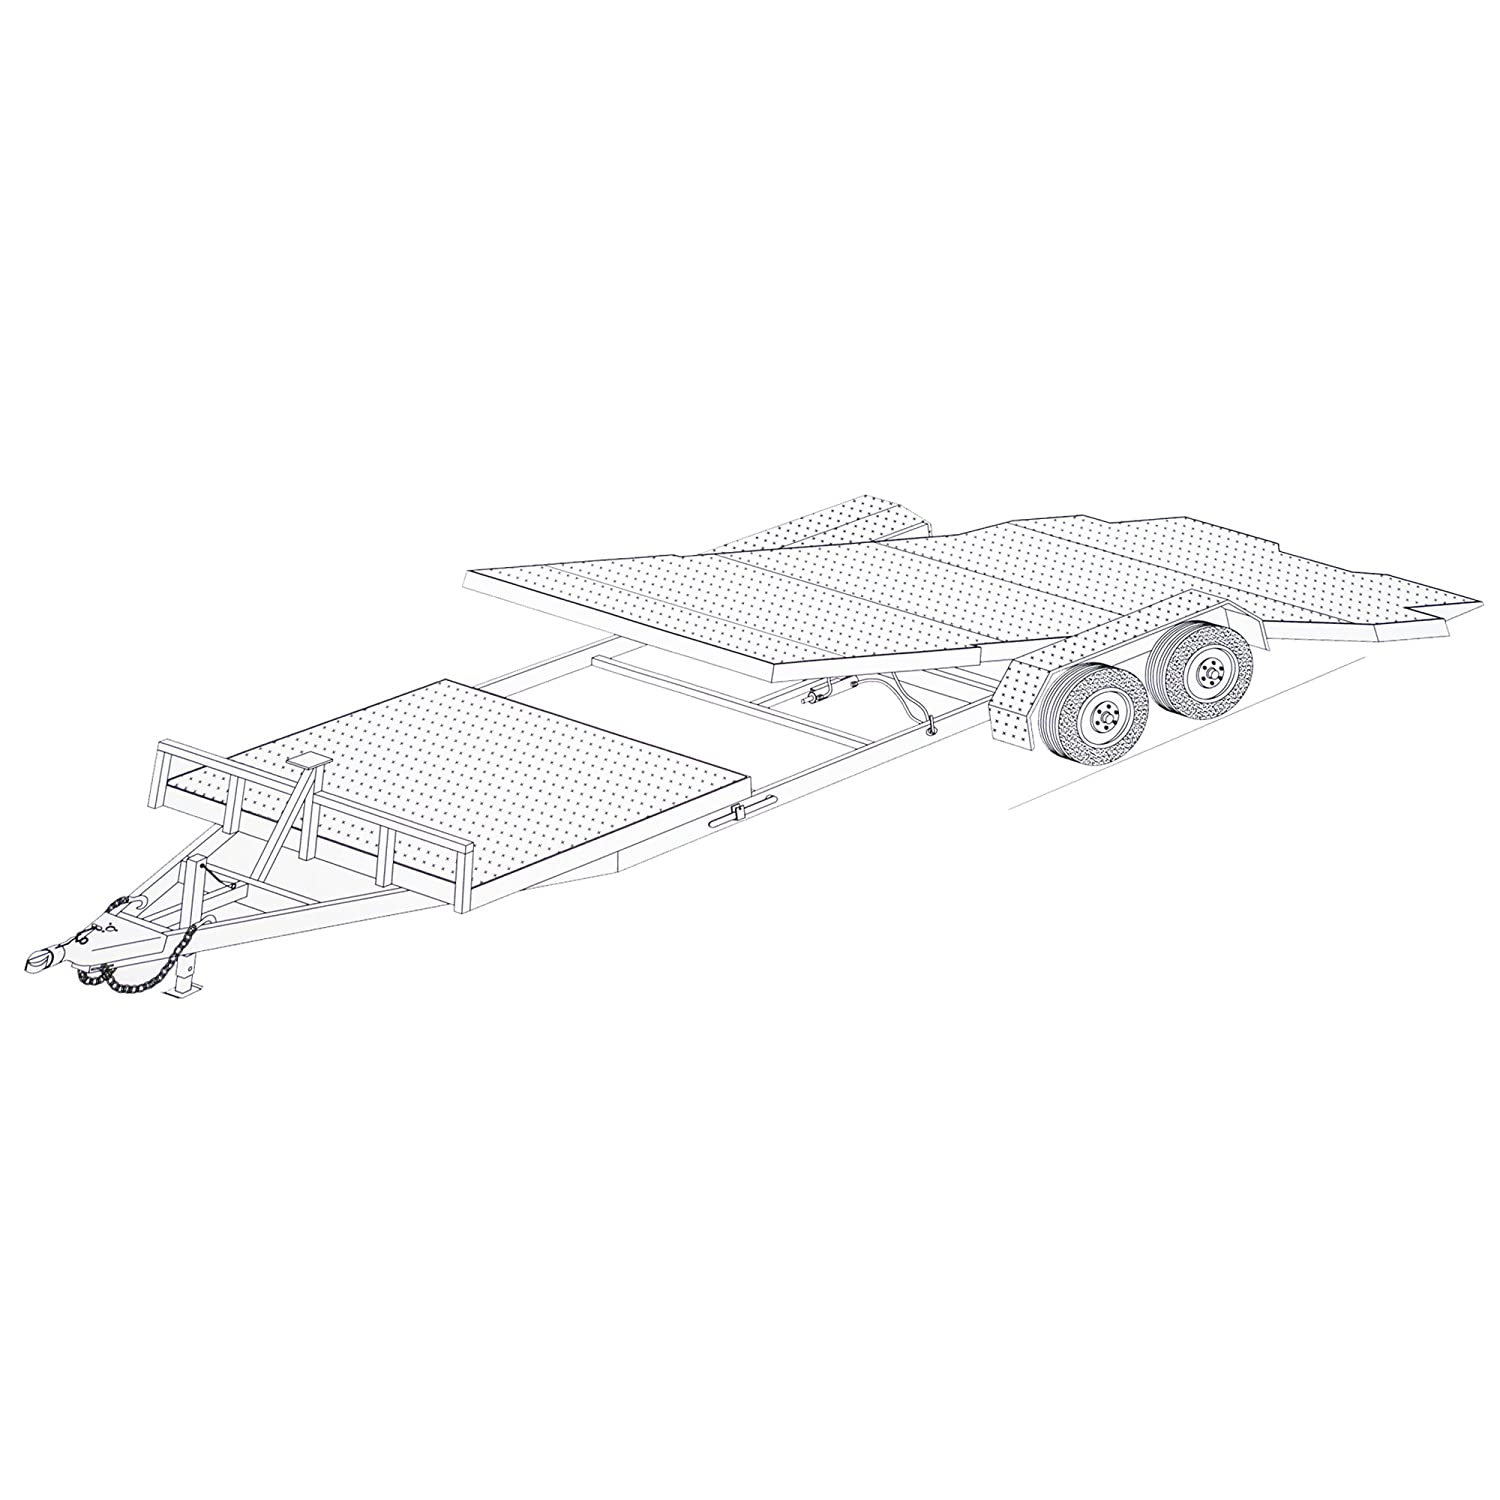 24 Gravity Tilt Car Hauler Trailer Plans Blueprints Utility Schematics Model 24gt Automotive